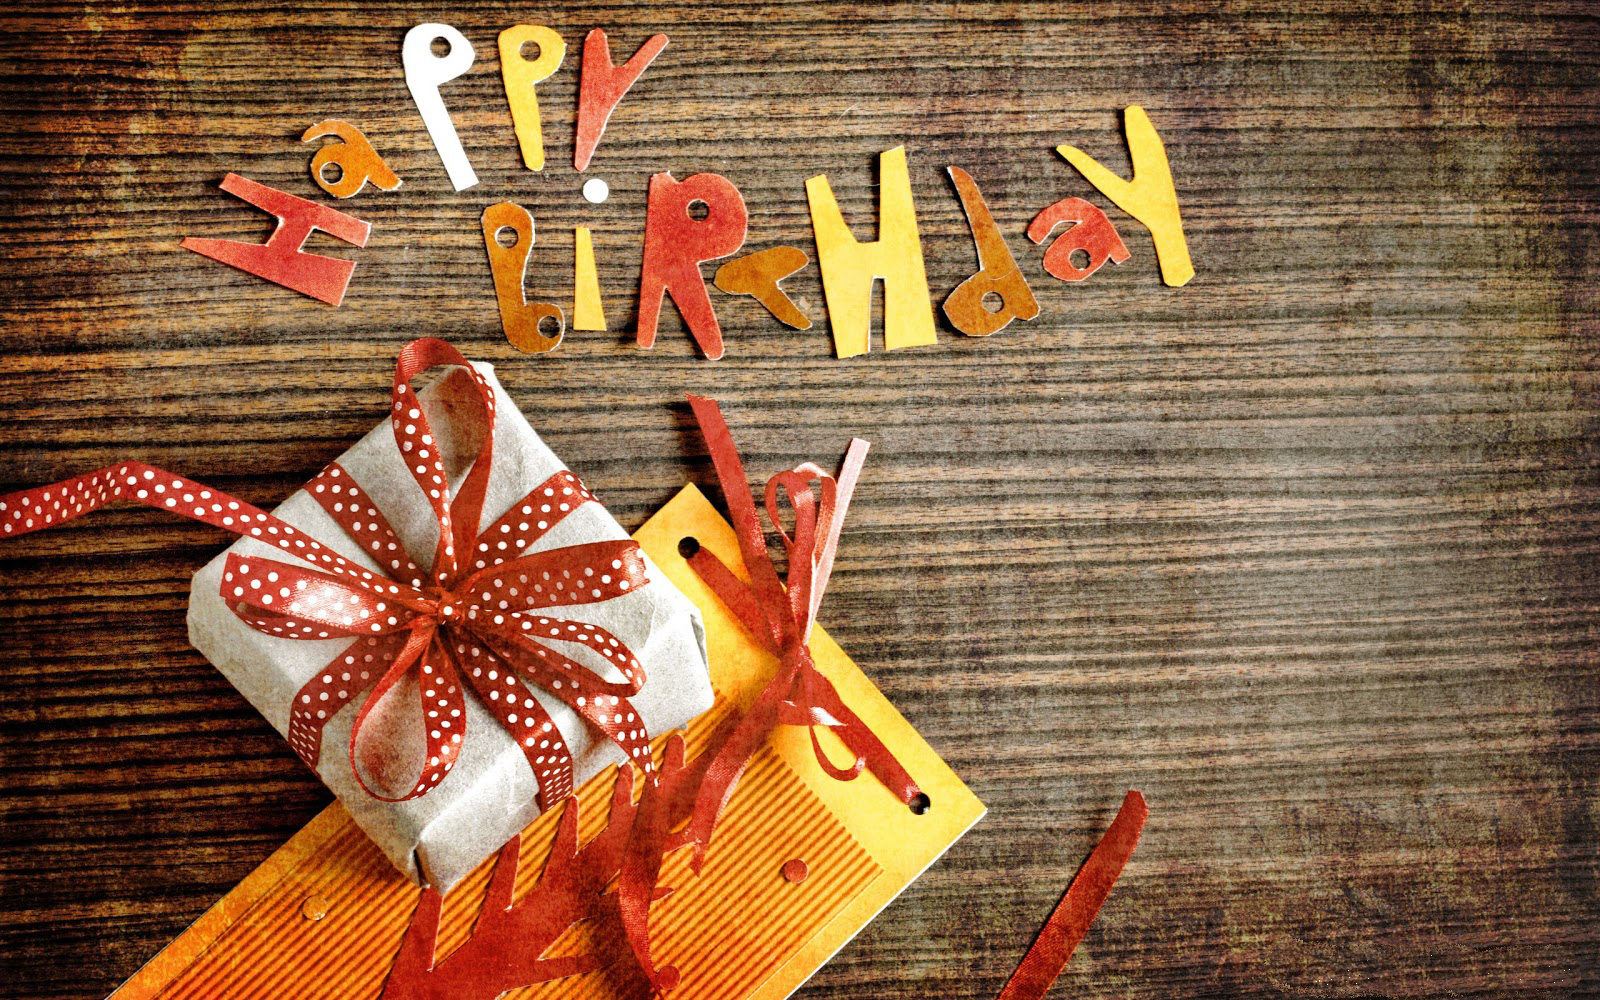 high quality birthday images ; birthday-images-hd-quality-happy+birthday+gift+full+hd+quality+wallpapers